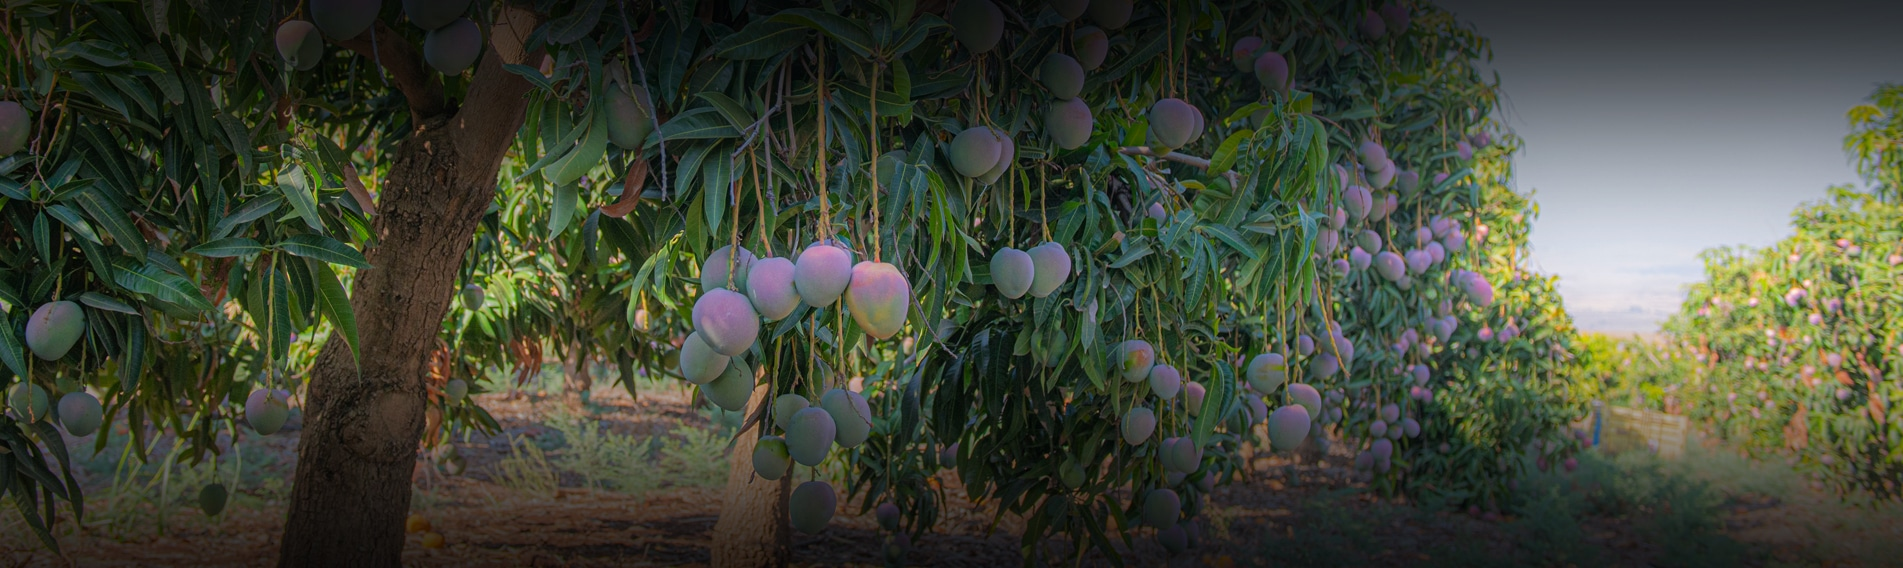 Growth-Based Irrigation in Mango